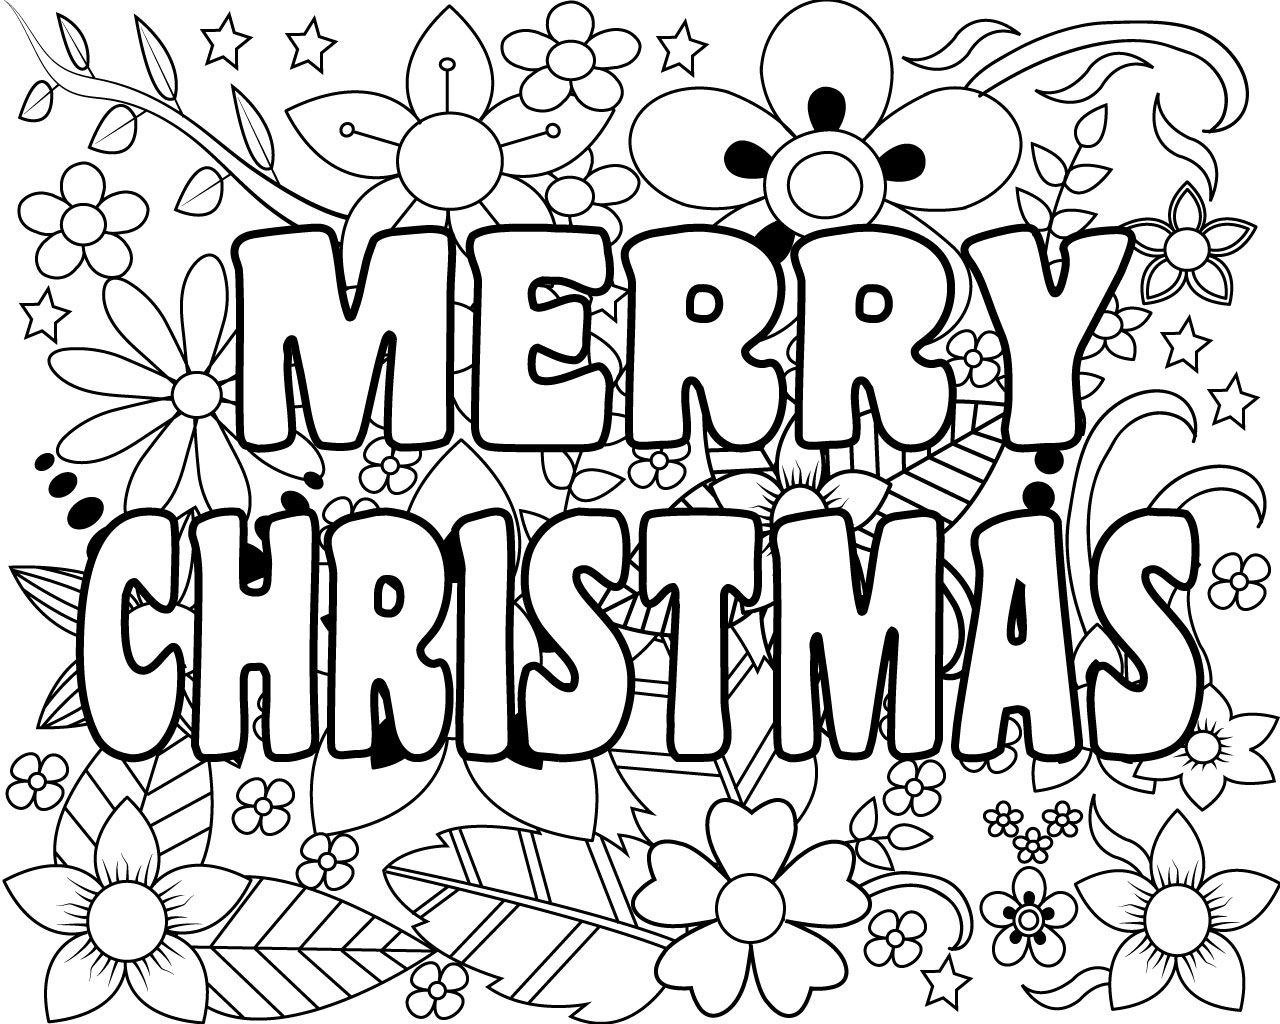 free coloring pages com christmas free printable merry christmas coloring pages for kids coloring christmas com pages free